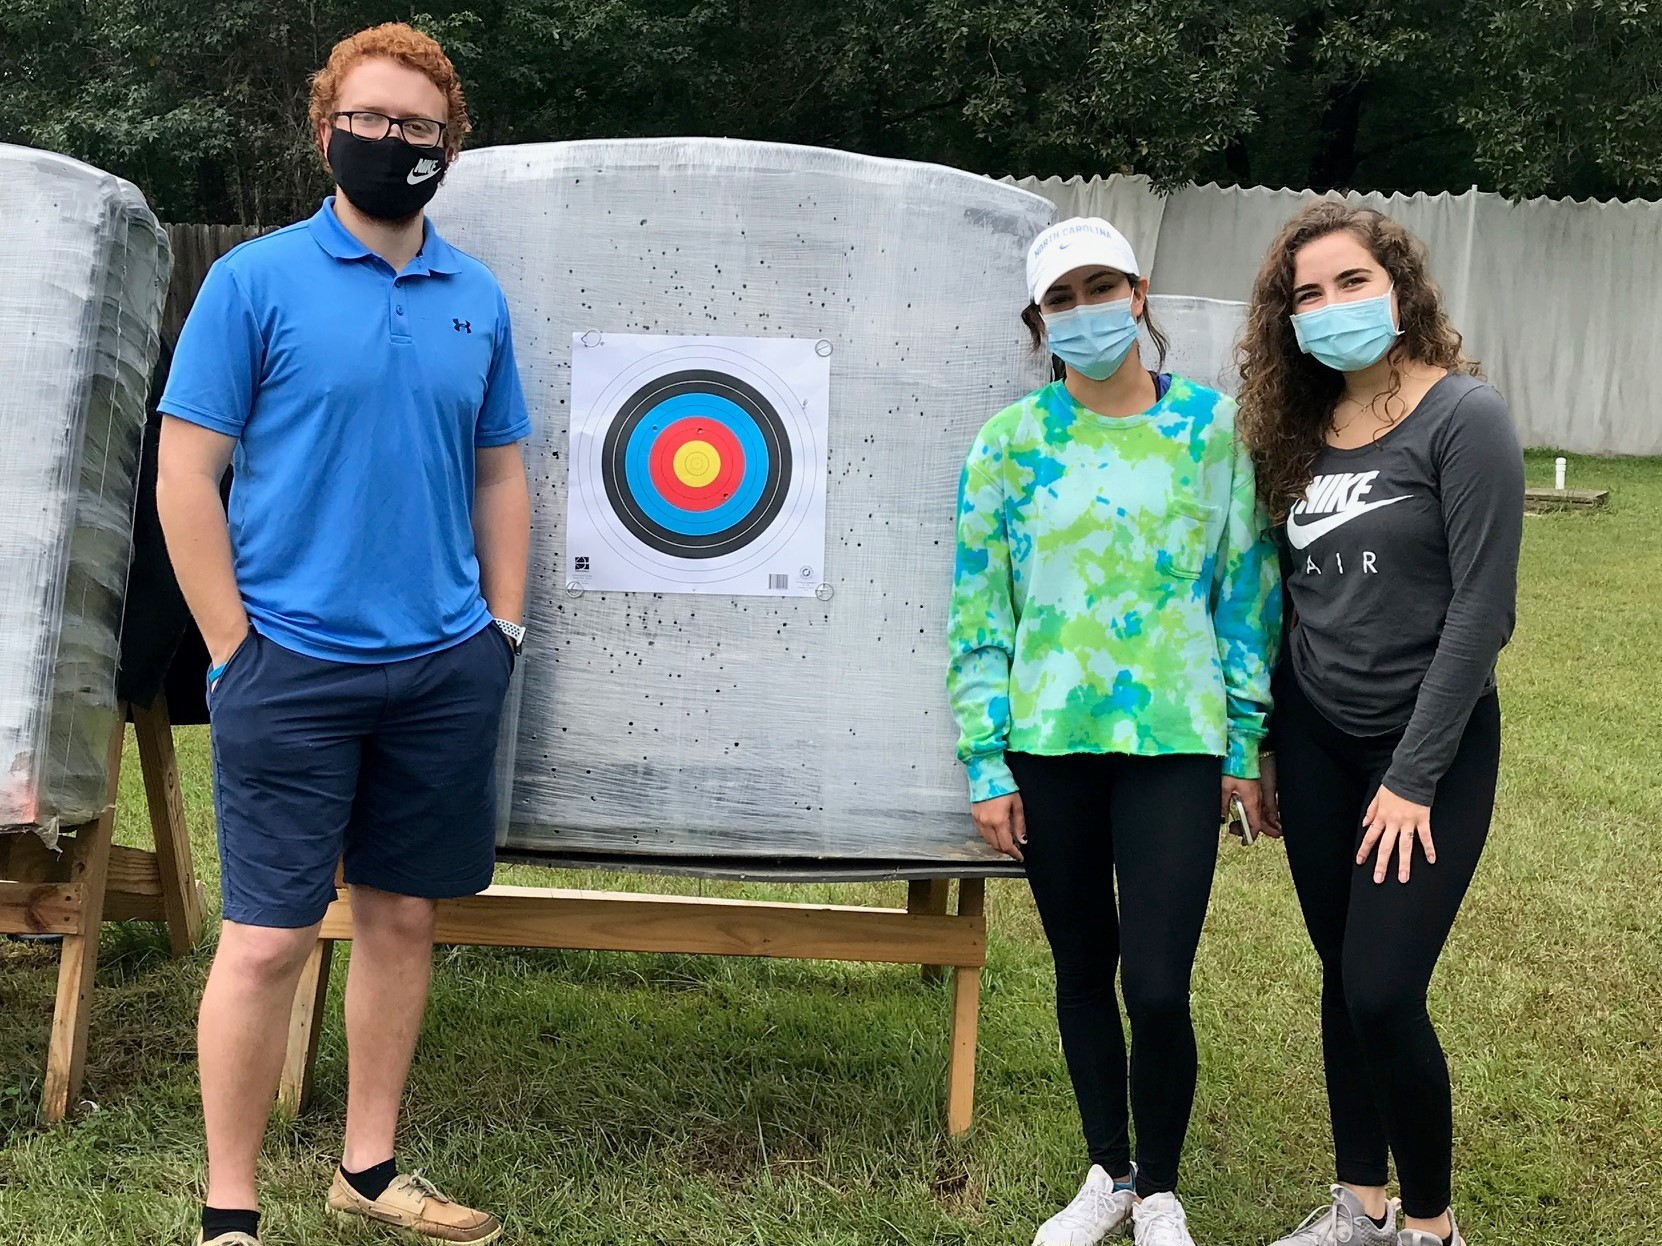 3 college students- one male on the left with two females on the right posing next to an archery bale and target. All are wearing masks.